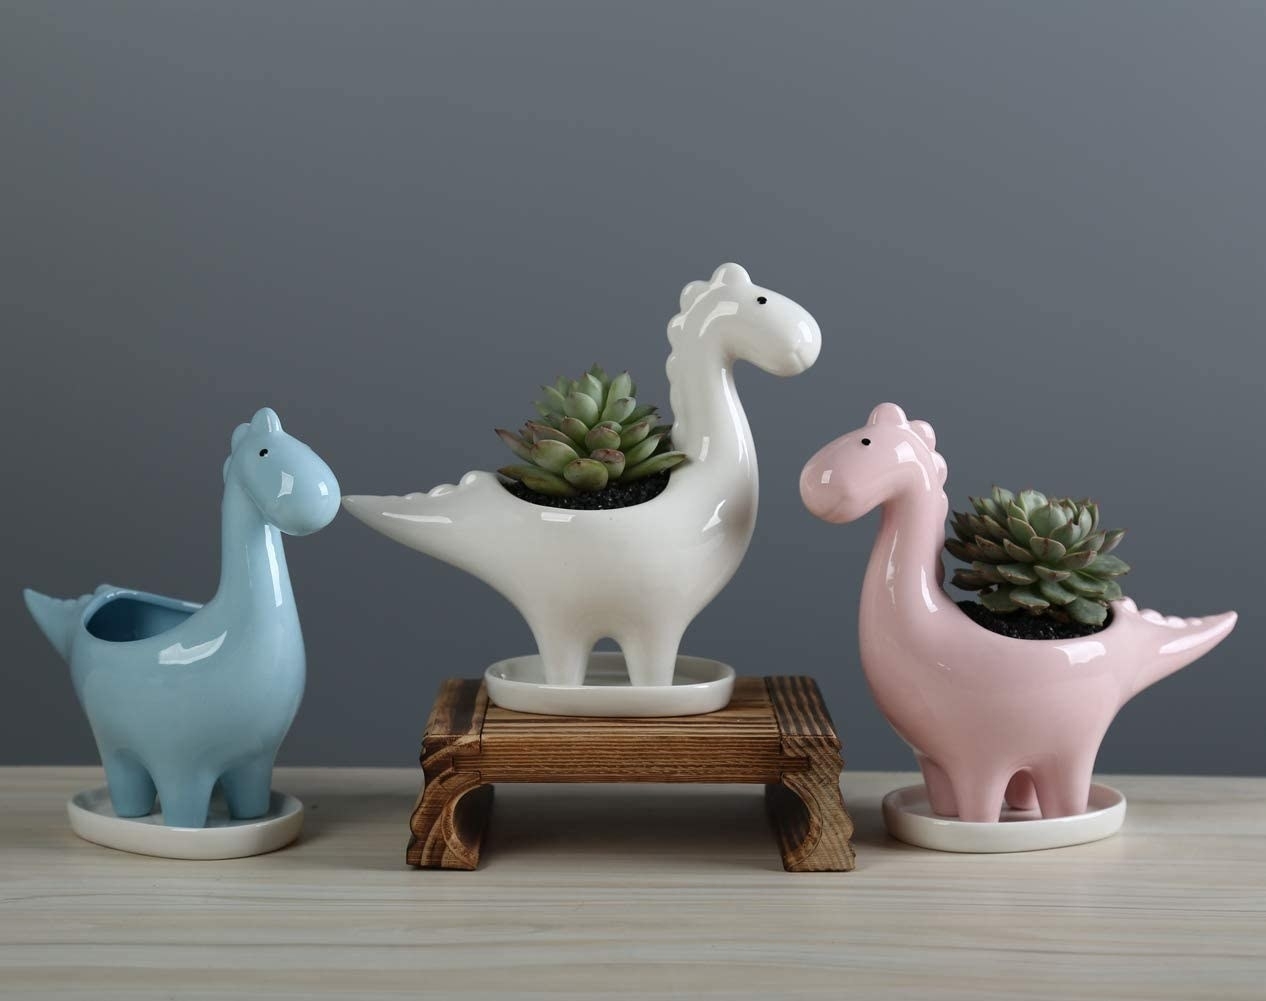 The small/medium-sized planters in blue, white, and pink, holding succulents